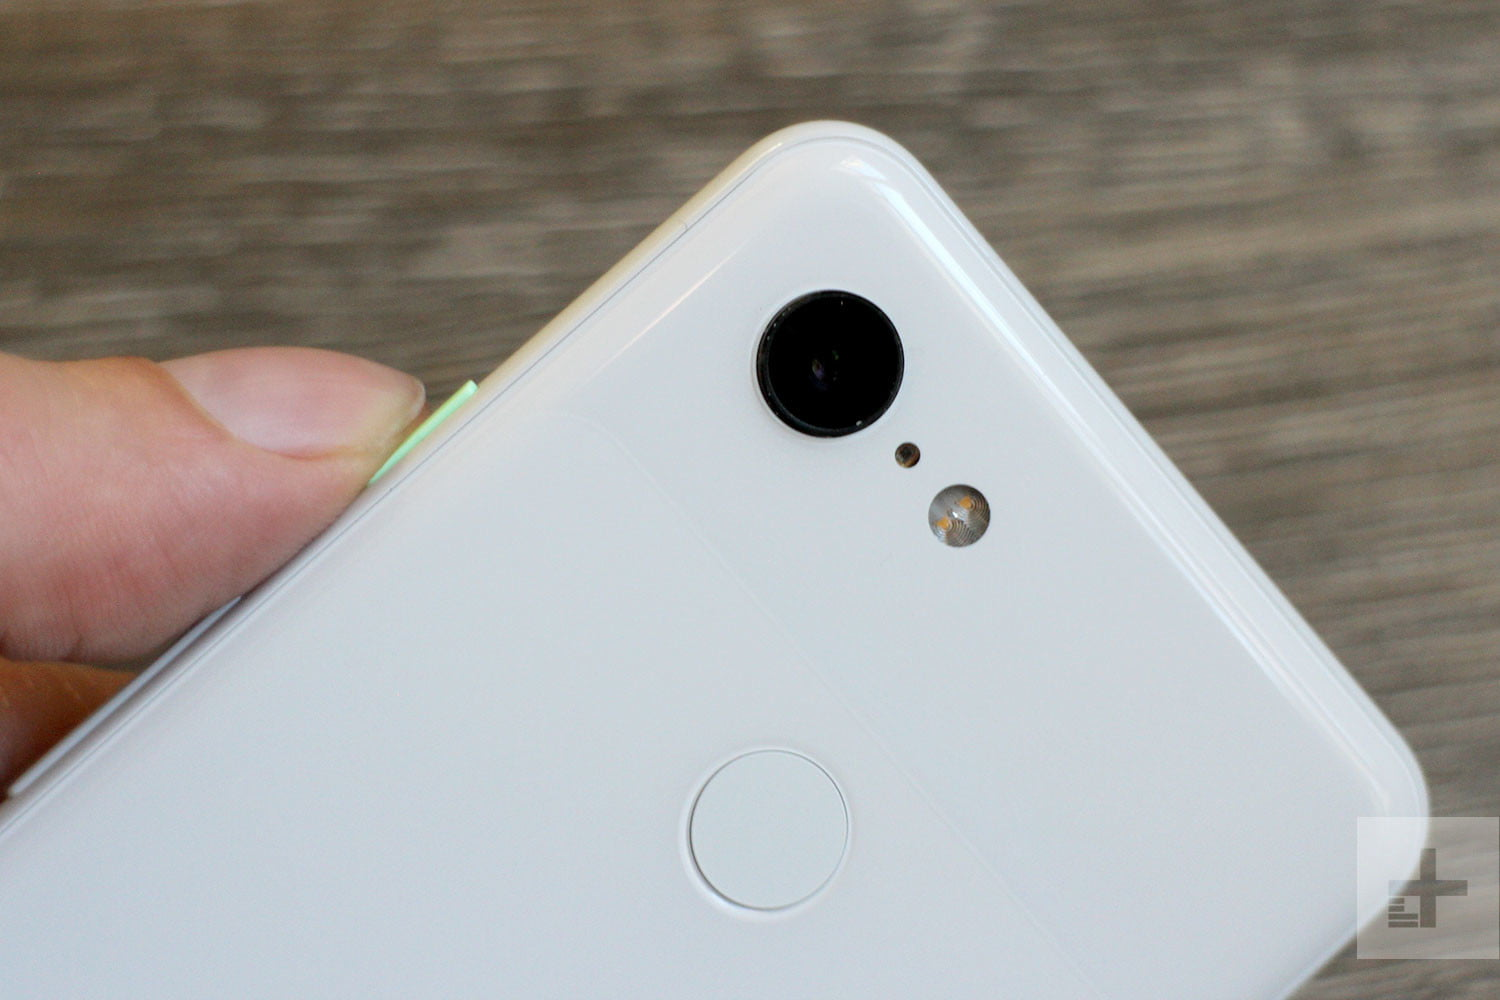 Free download The Best Google Pixel 3 or Pixel 3a Tips and ...